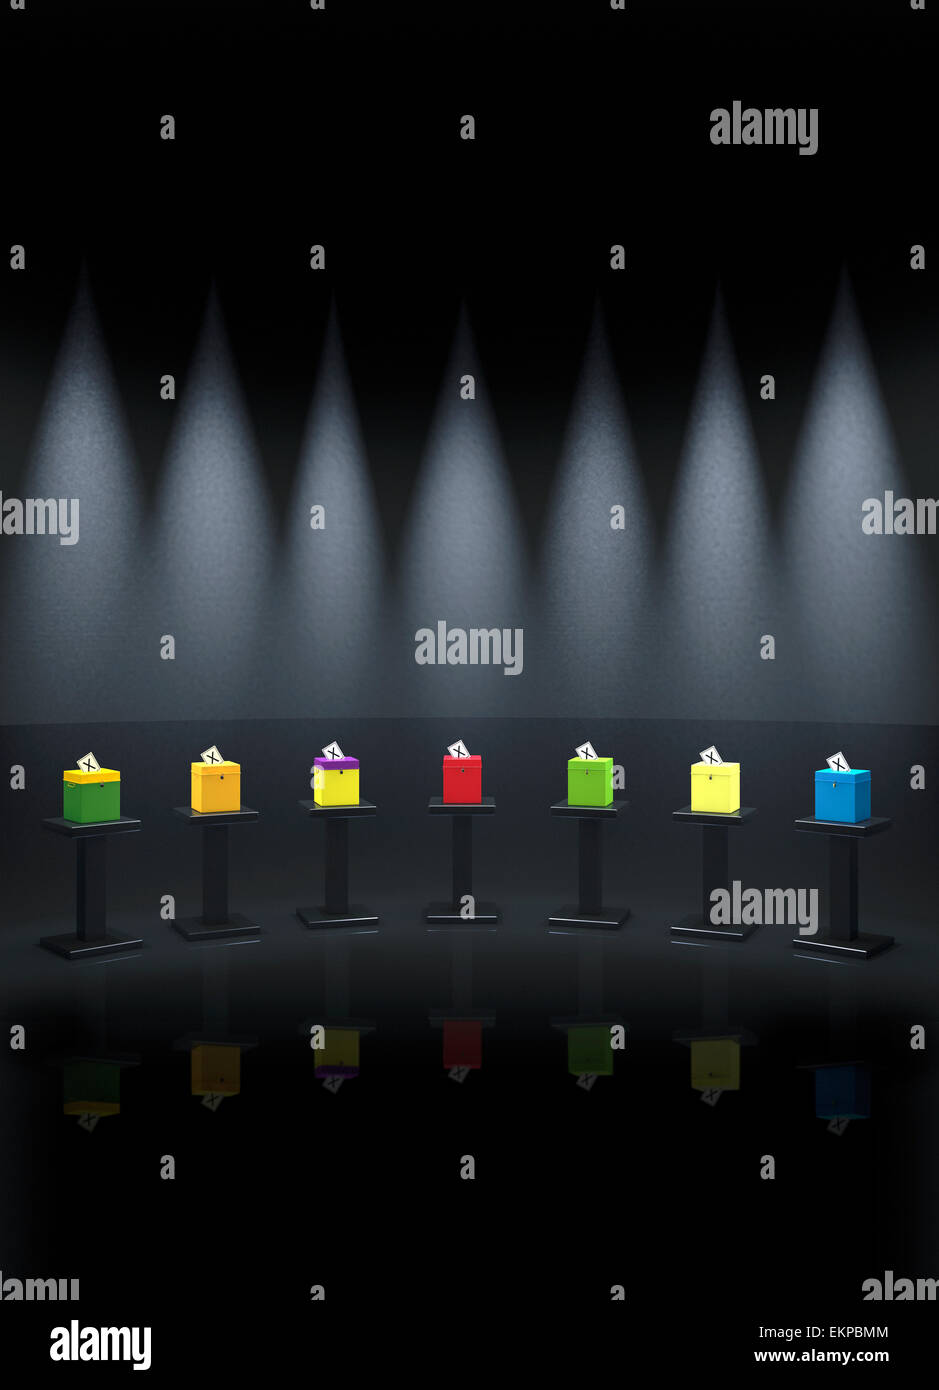 Seven Different Coloured Party Ballot Boxes On Podiums In TV Studio setting; representing British election TV debates - Stock Image